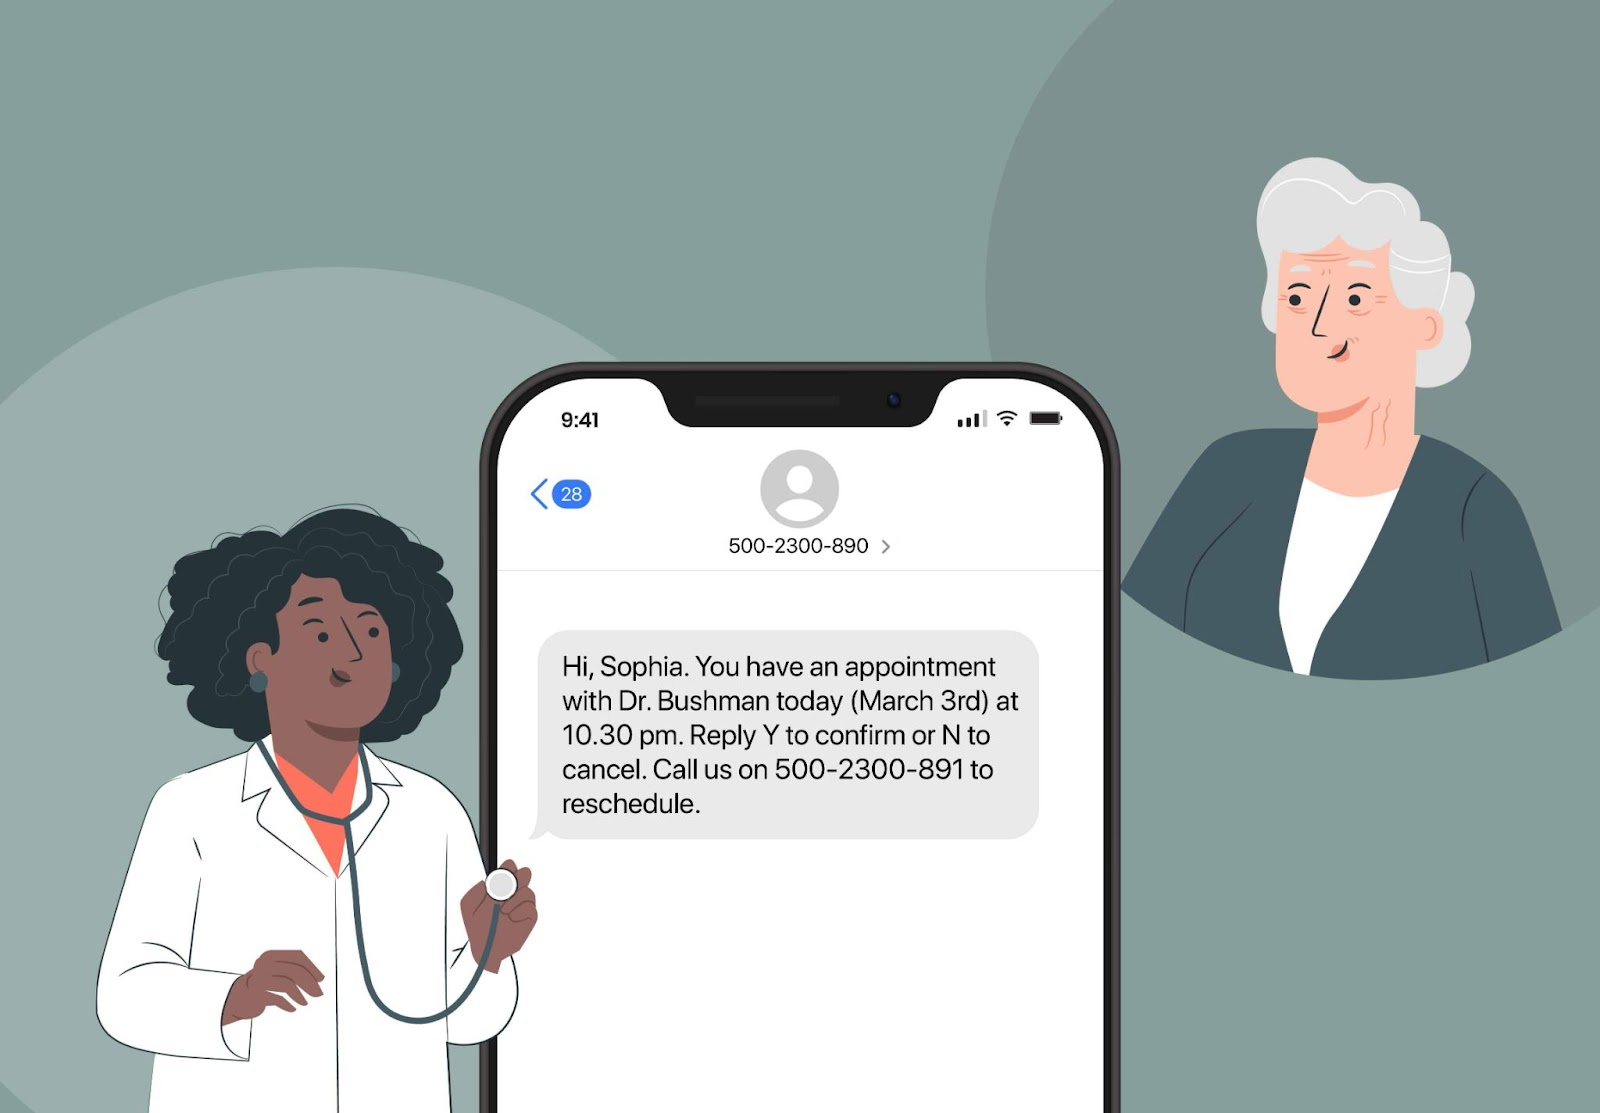 doctor appointment reminder text message